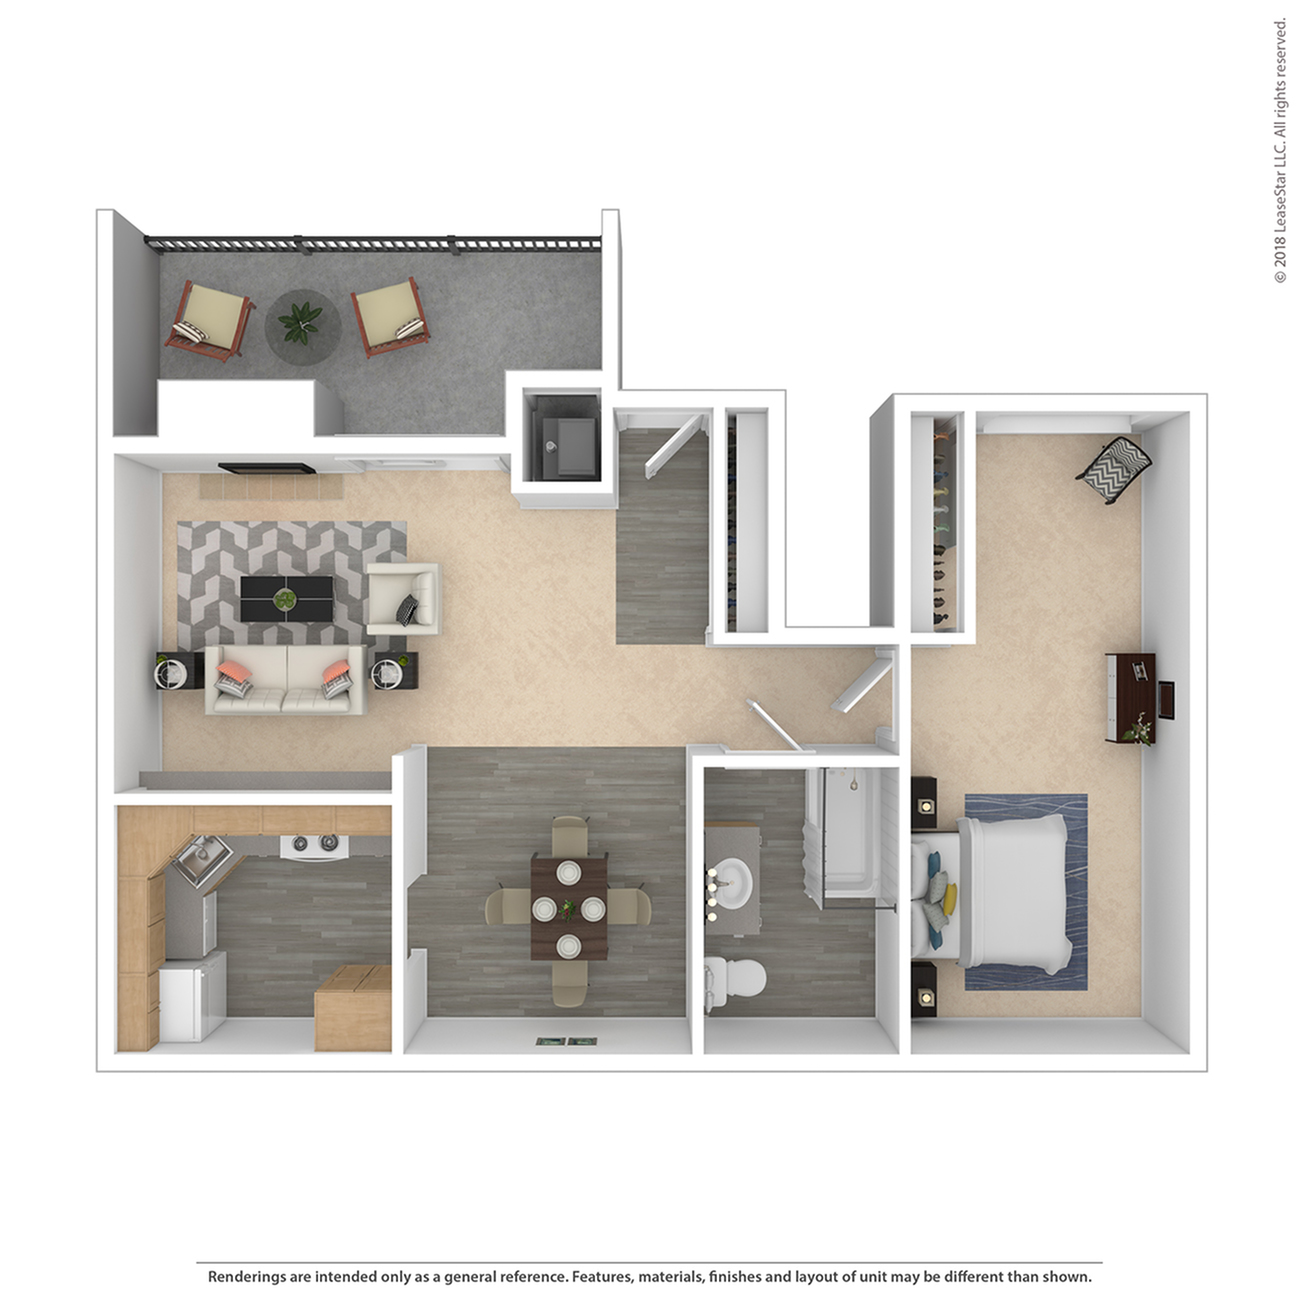 1 Bedroom Floor Plan | Federal Heights Colorado Apartments | The Lodge on 84th